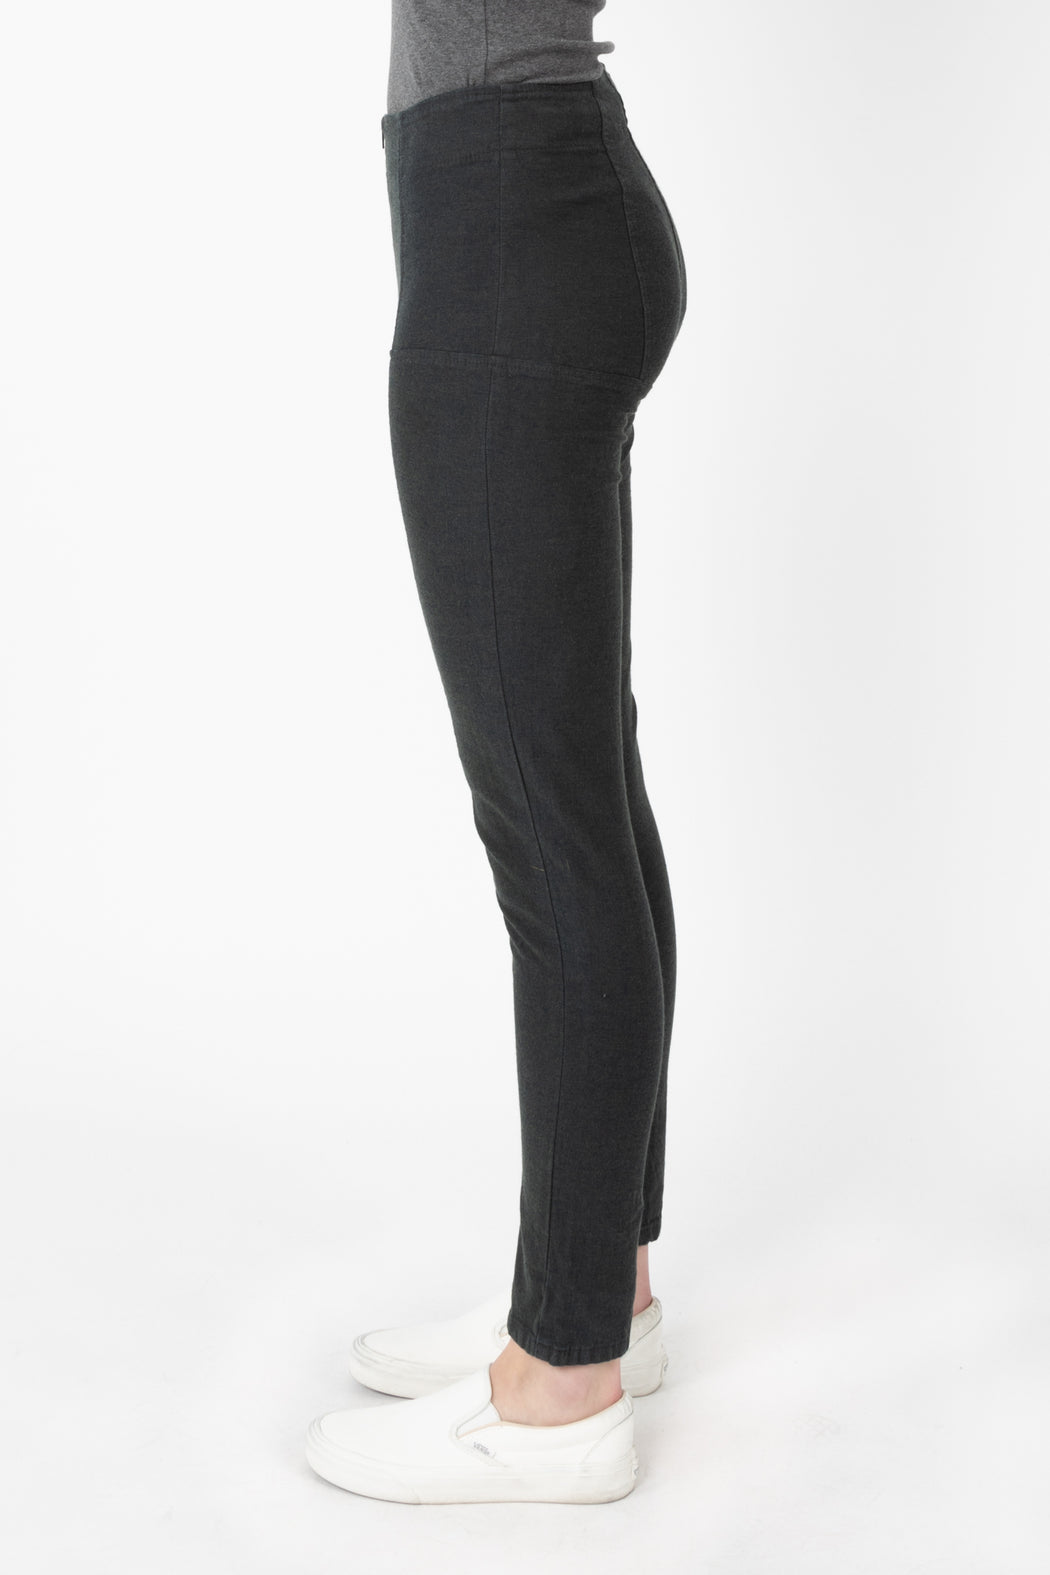 AL Original Denim Girdle in Graphite